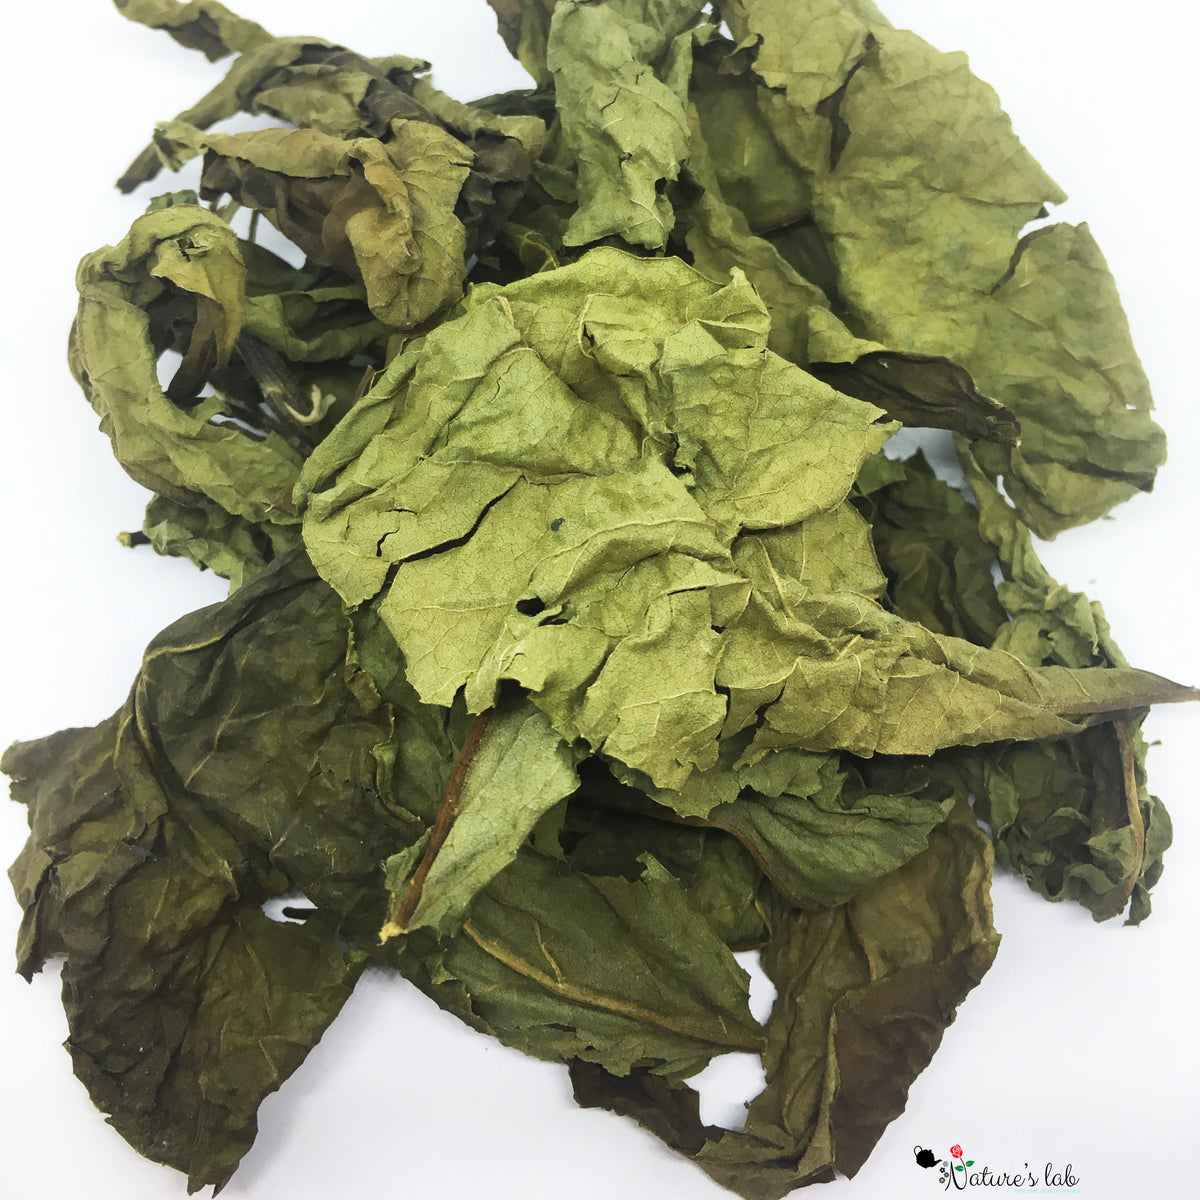 Organic Bitter leaf/South African Leaf Tea 纯天然有机南非苦叶(斑鸠菊)茶